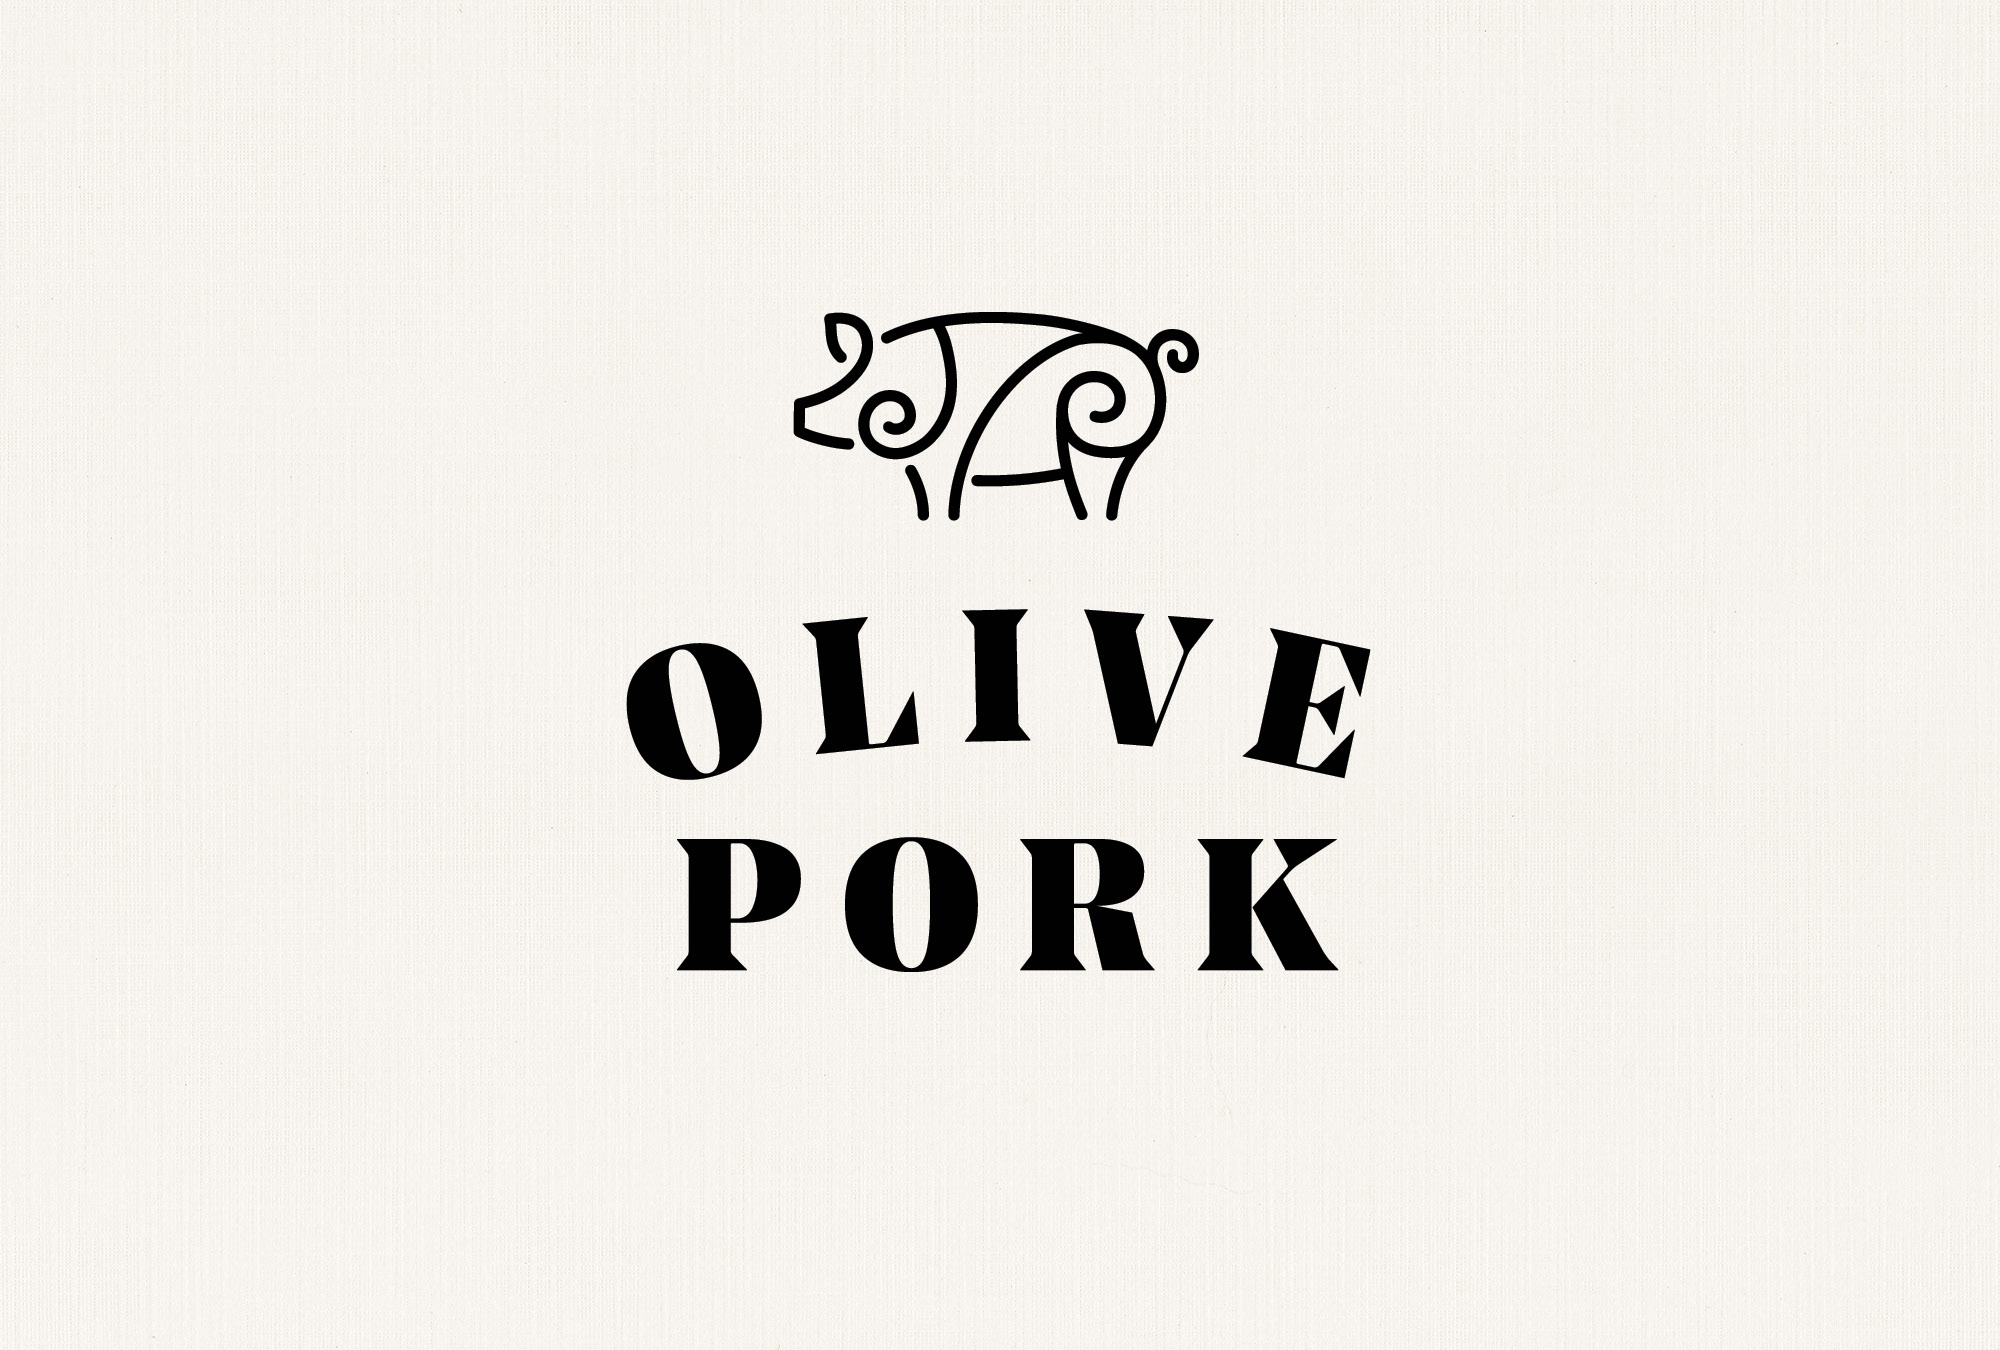 Cover image: Olive Pork